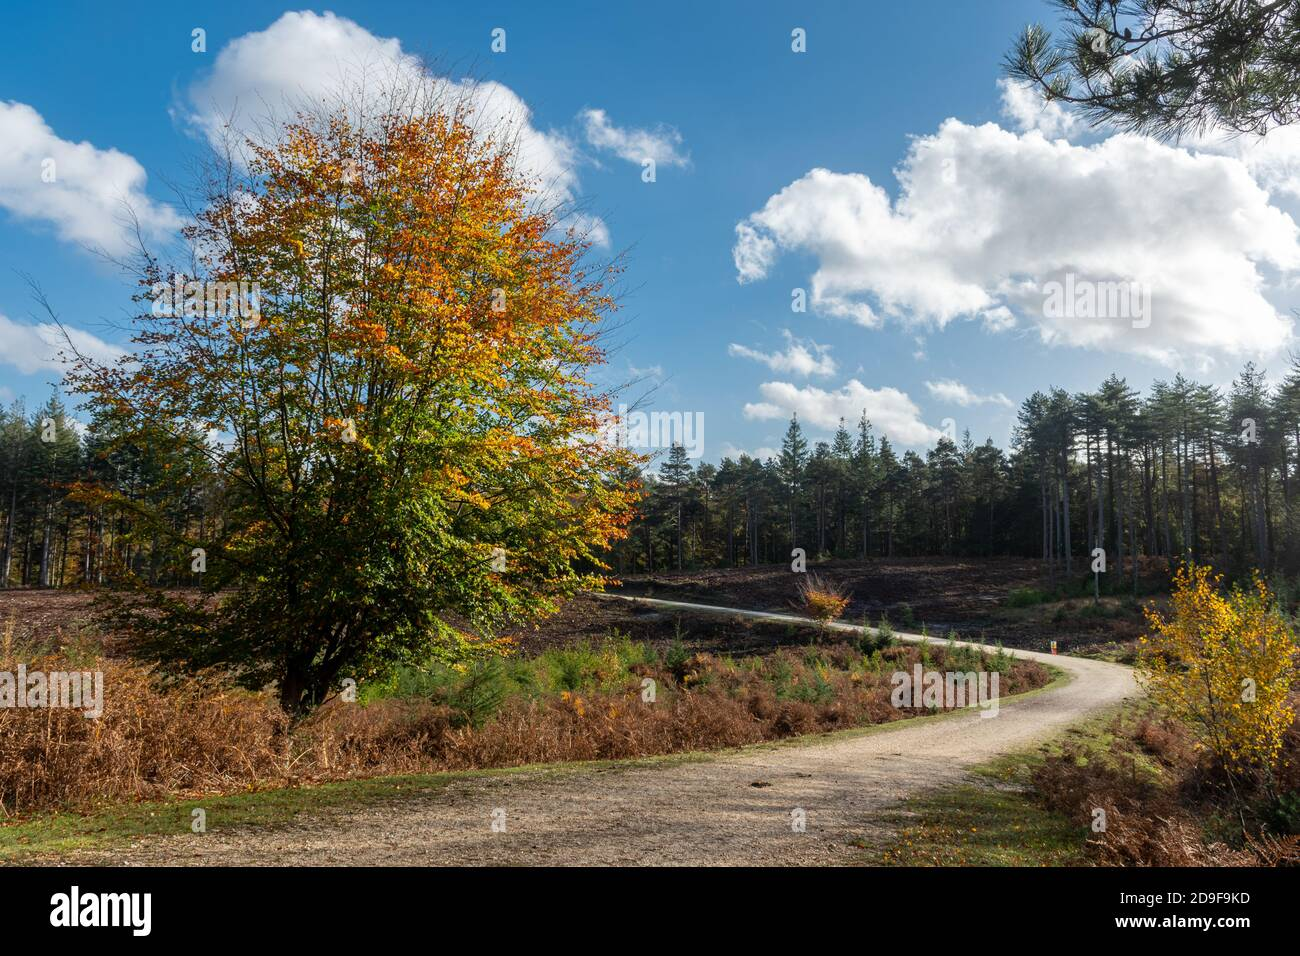 a-track-or-path-through-a-clear-felled-area-in-a-coniferous-plantation-inclosure-in-the-new-forest-national-park-in-hampshire-uk-during-autumn-2D9F9KD.jpg